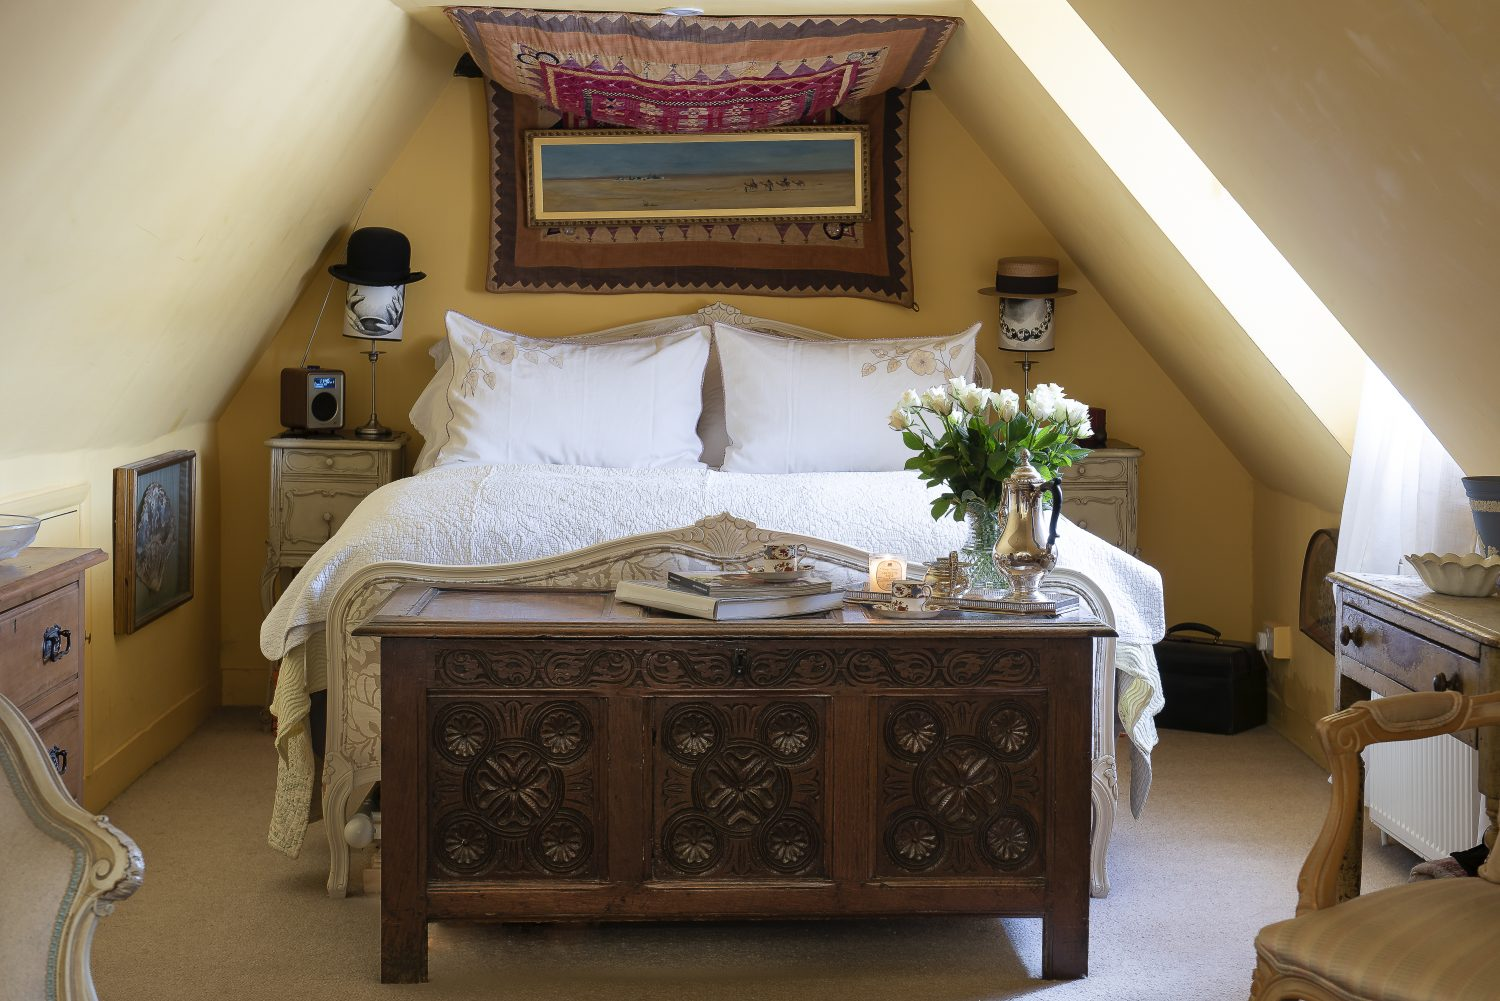 The Fornasetti lamp shades in the master bedroom are topped with vintage hats. The tapestry over the bed is an antique ceremonial Indian bullock blanket